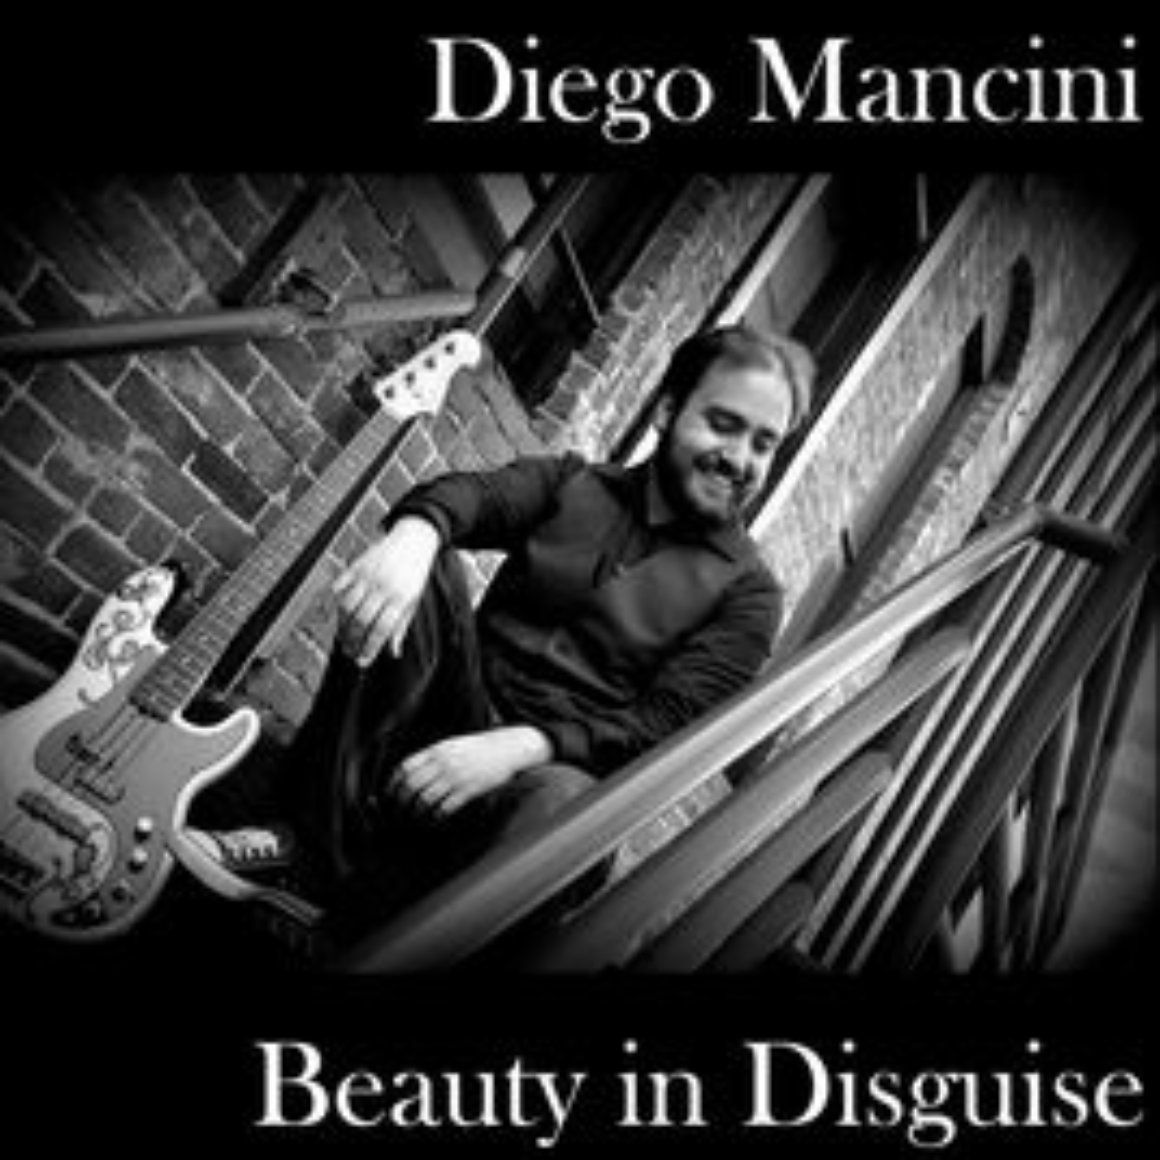 Diego Mancini - Beauty in Disguise (2013)